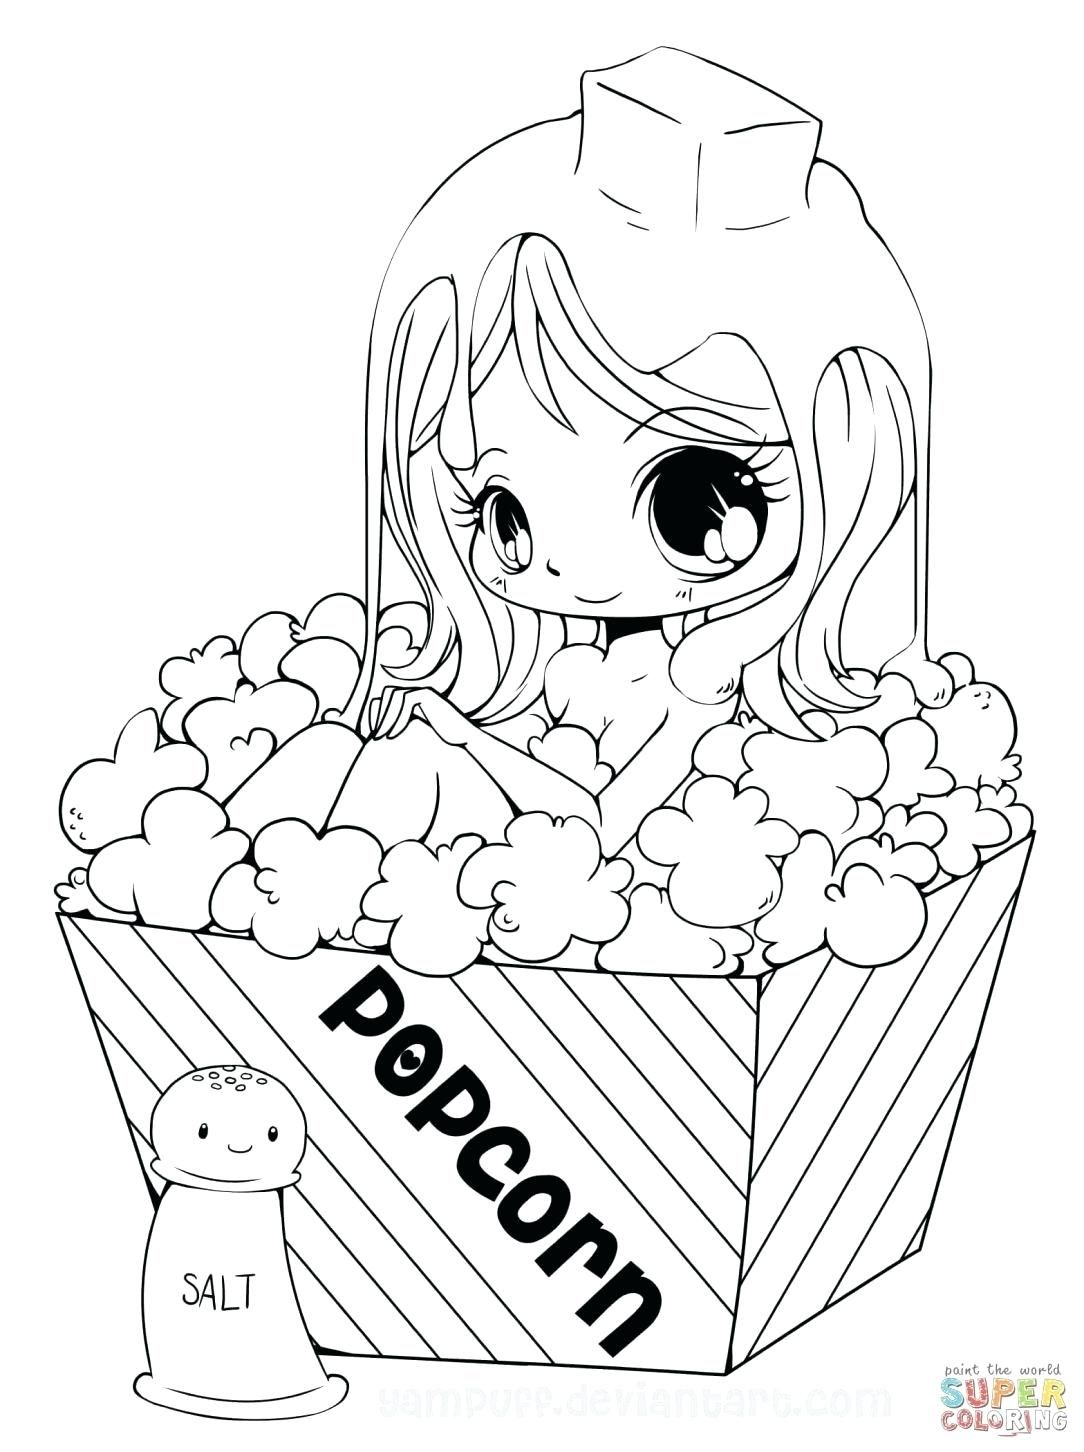 Coloring Book Fundraiser Coloring Pages Coloring Books For Girls Shakeprint Book Fundraiser P Chibi Coloring Pages Princess Coloring Pages Witch Coloring Pages